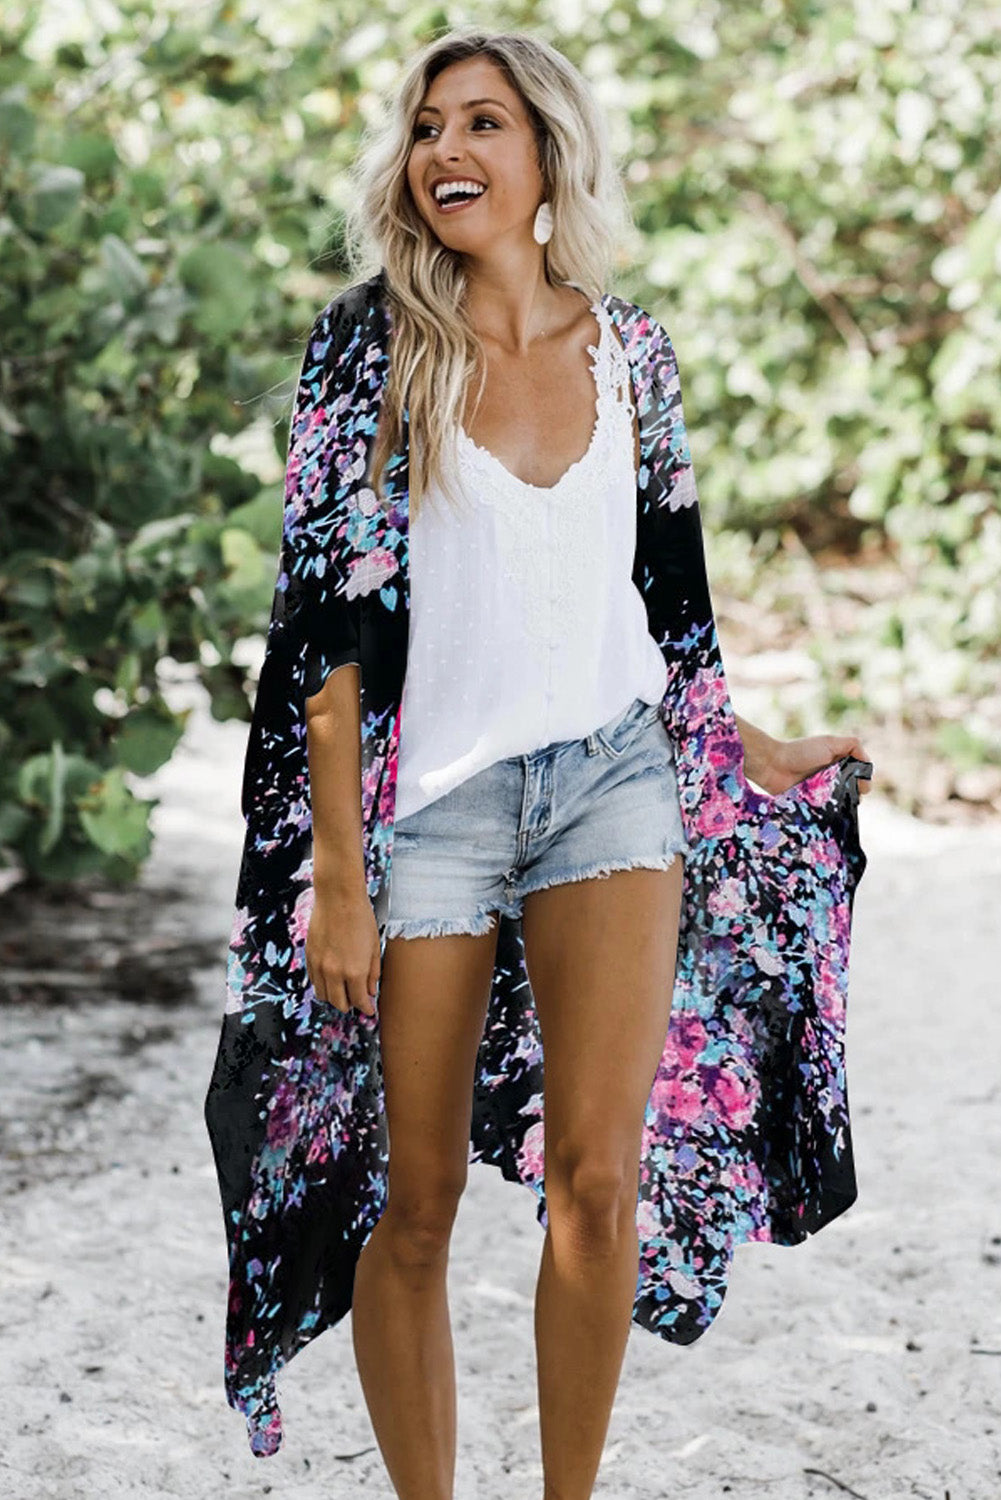 Black Floral Kimono Sleeves Chiffon Loose Beach Cover Up Beach Cover-ups Discount Designer Fashion Clothes Shoes Bags Women Men Kids Children Black Owned Business